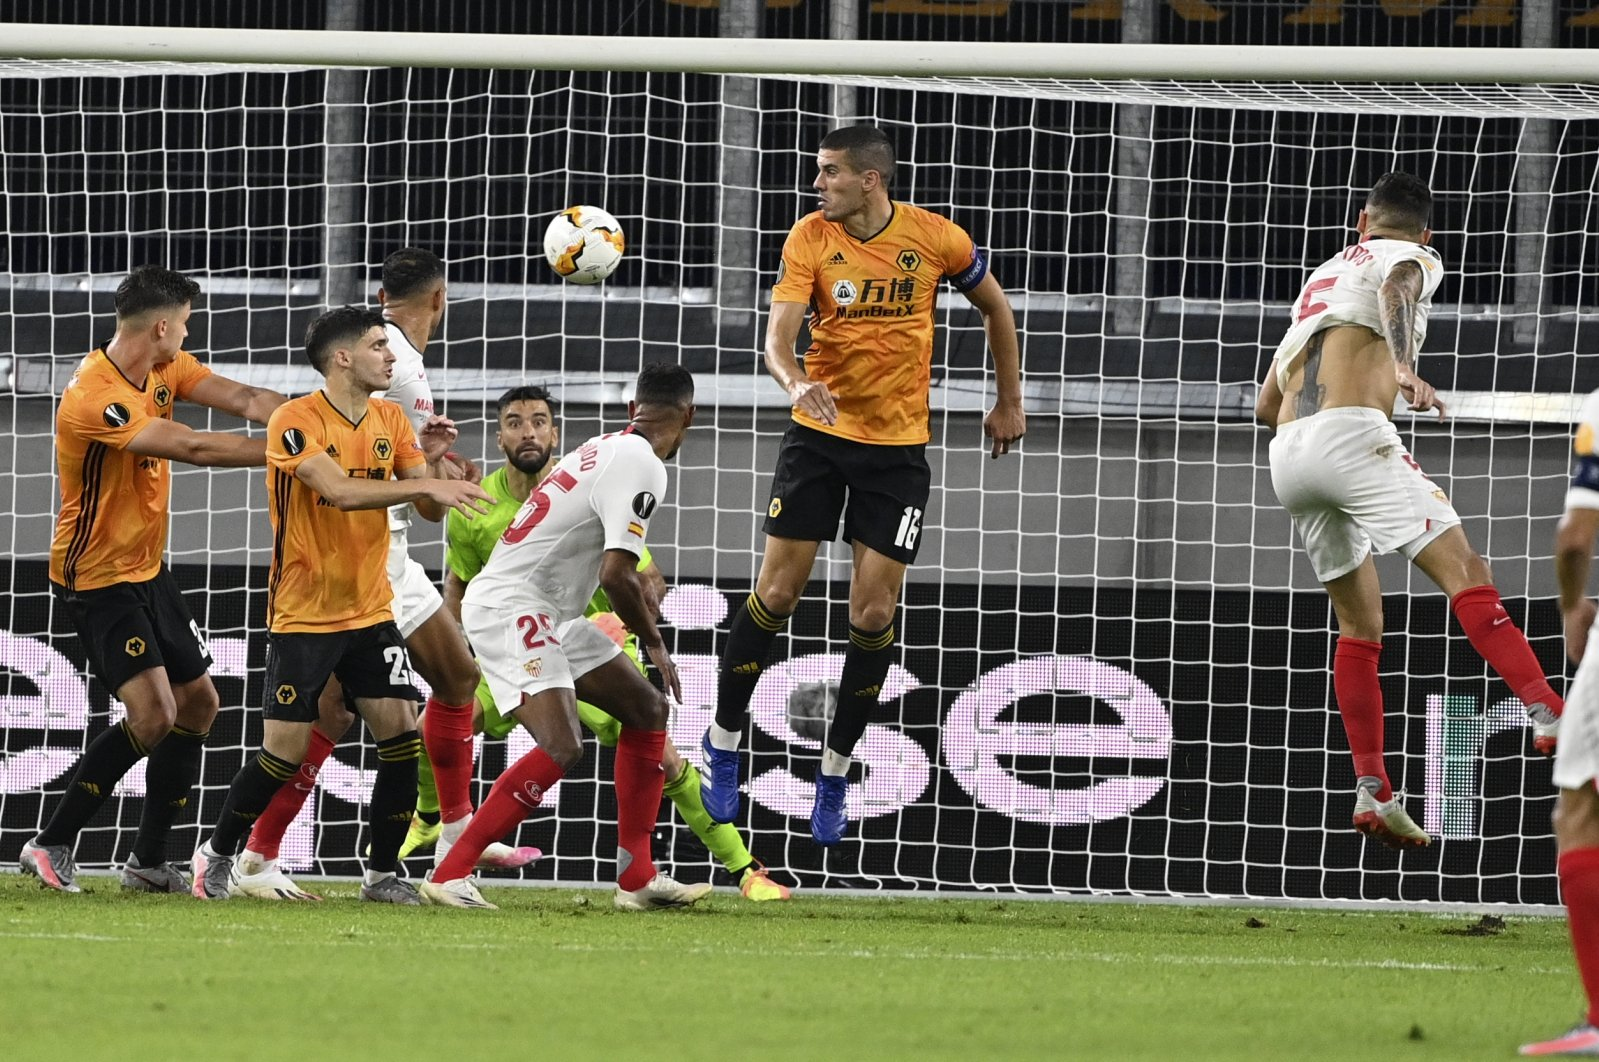 Sevilla's Lucas Ocampos, right, heads the ball to score his team's first goal during the Europa League quarterfinal match against Wolverhampton Wanderers in Duisburg, Germany, Aug. 11, 2020. (AP Photo)